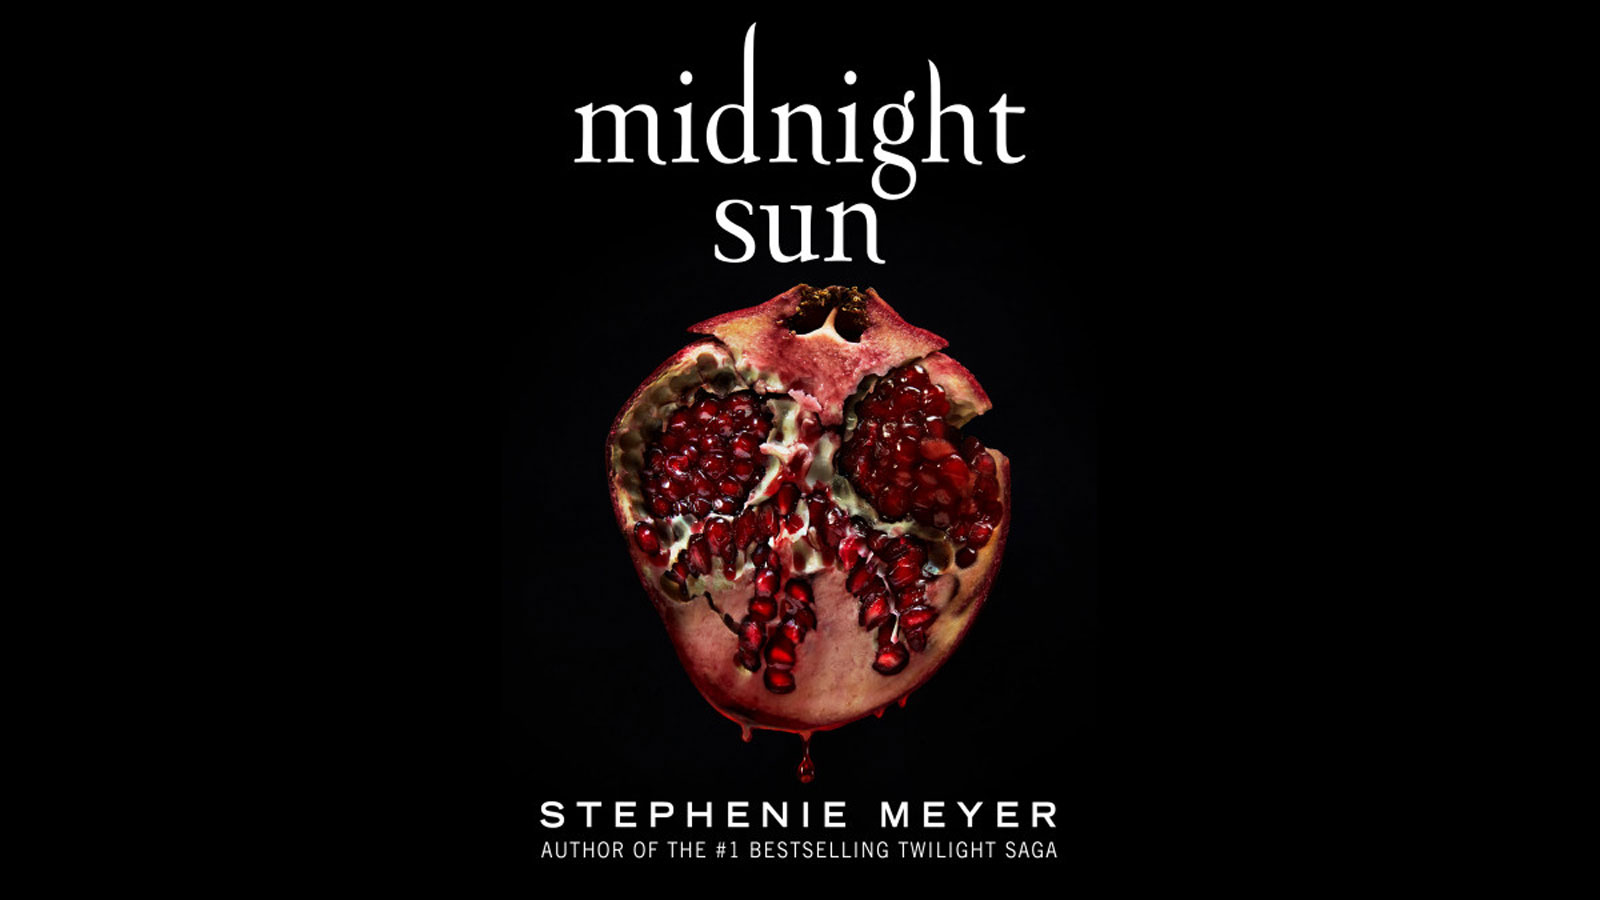 'Midnight Sun' is finally here and 'Twilight' fans have already started binge-reading it